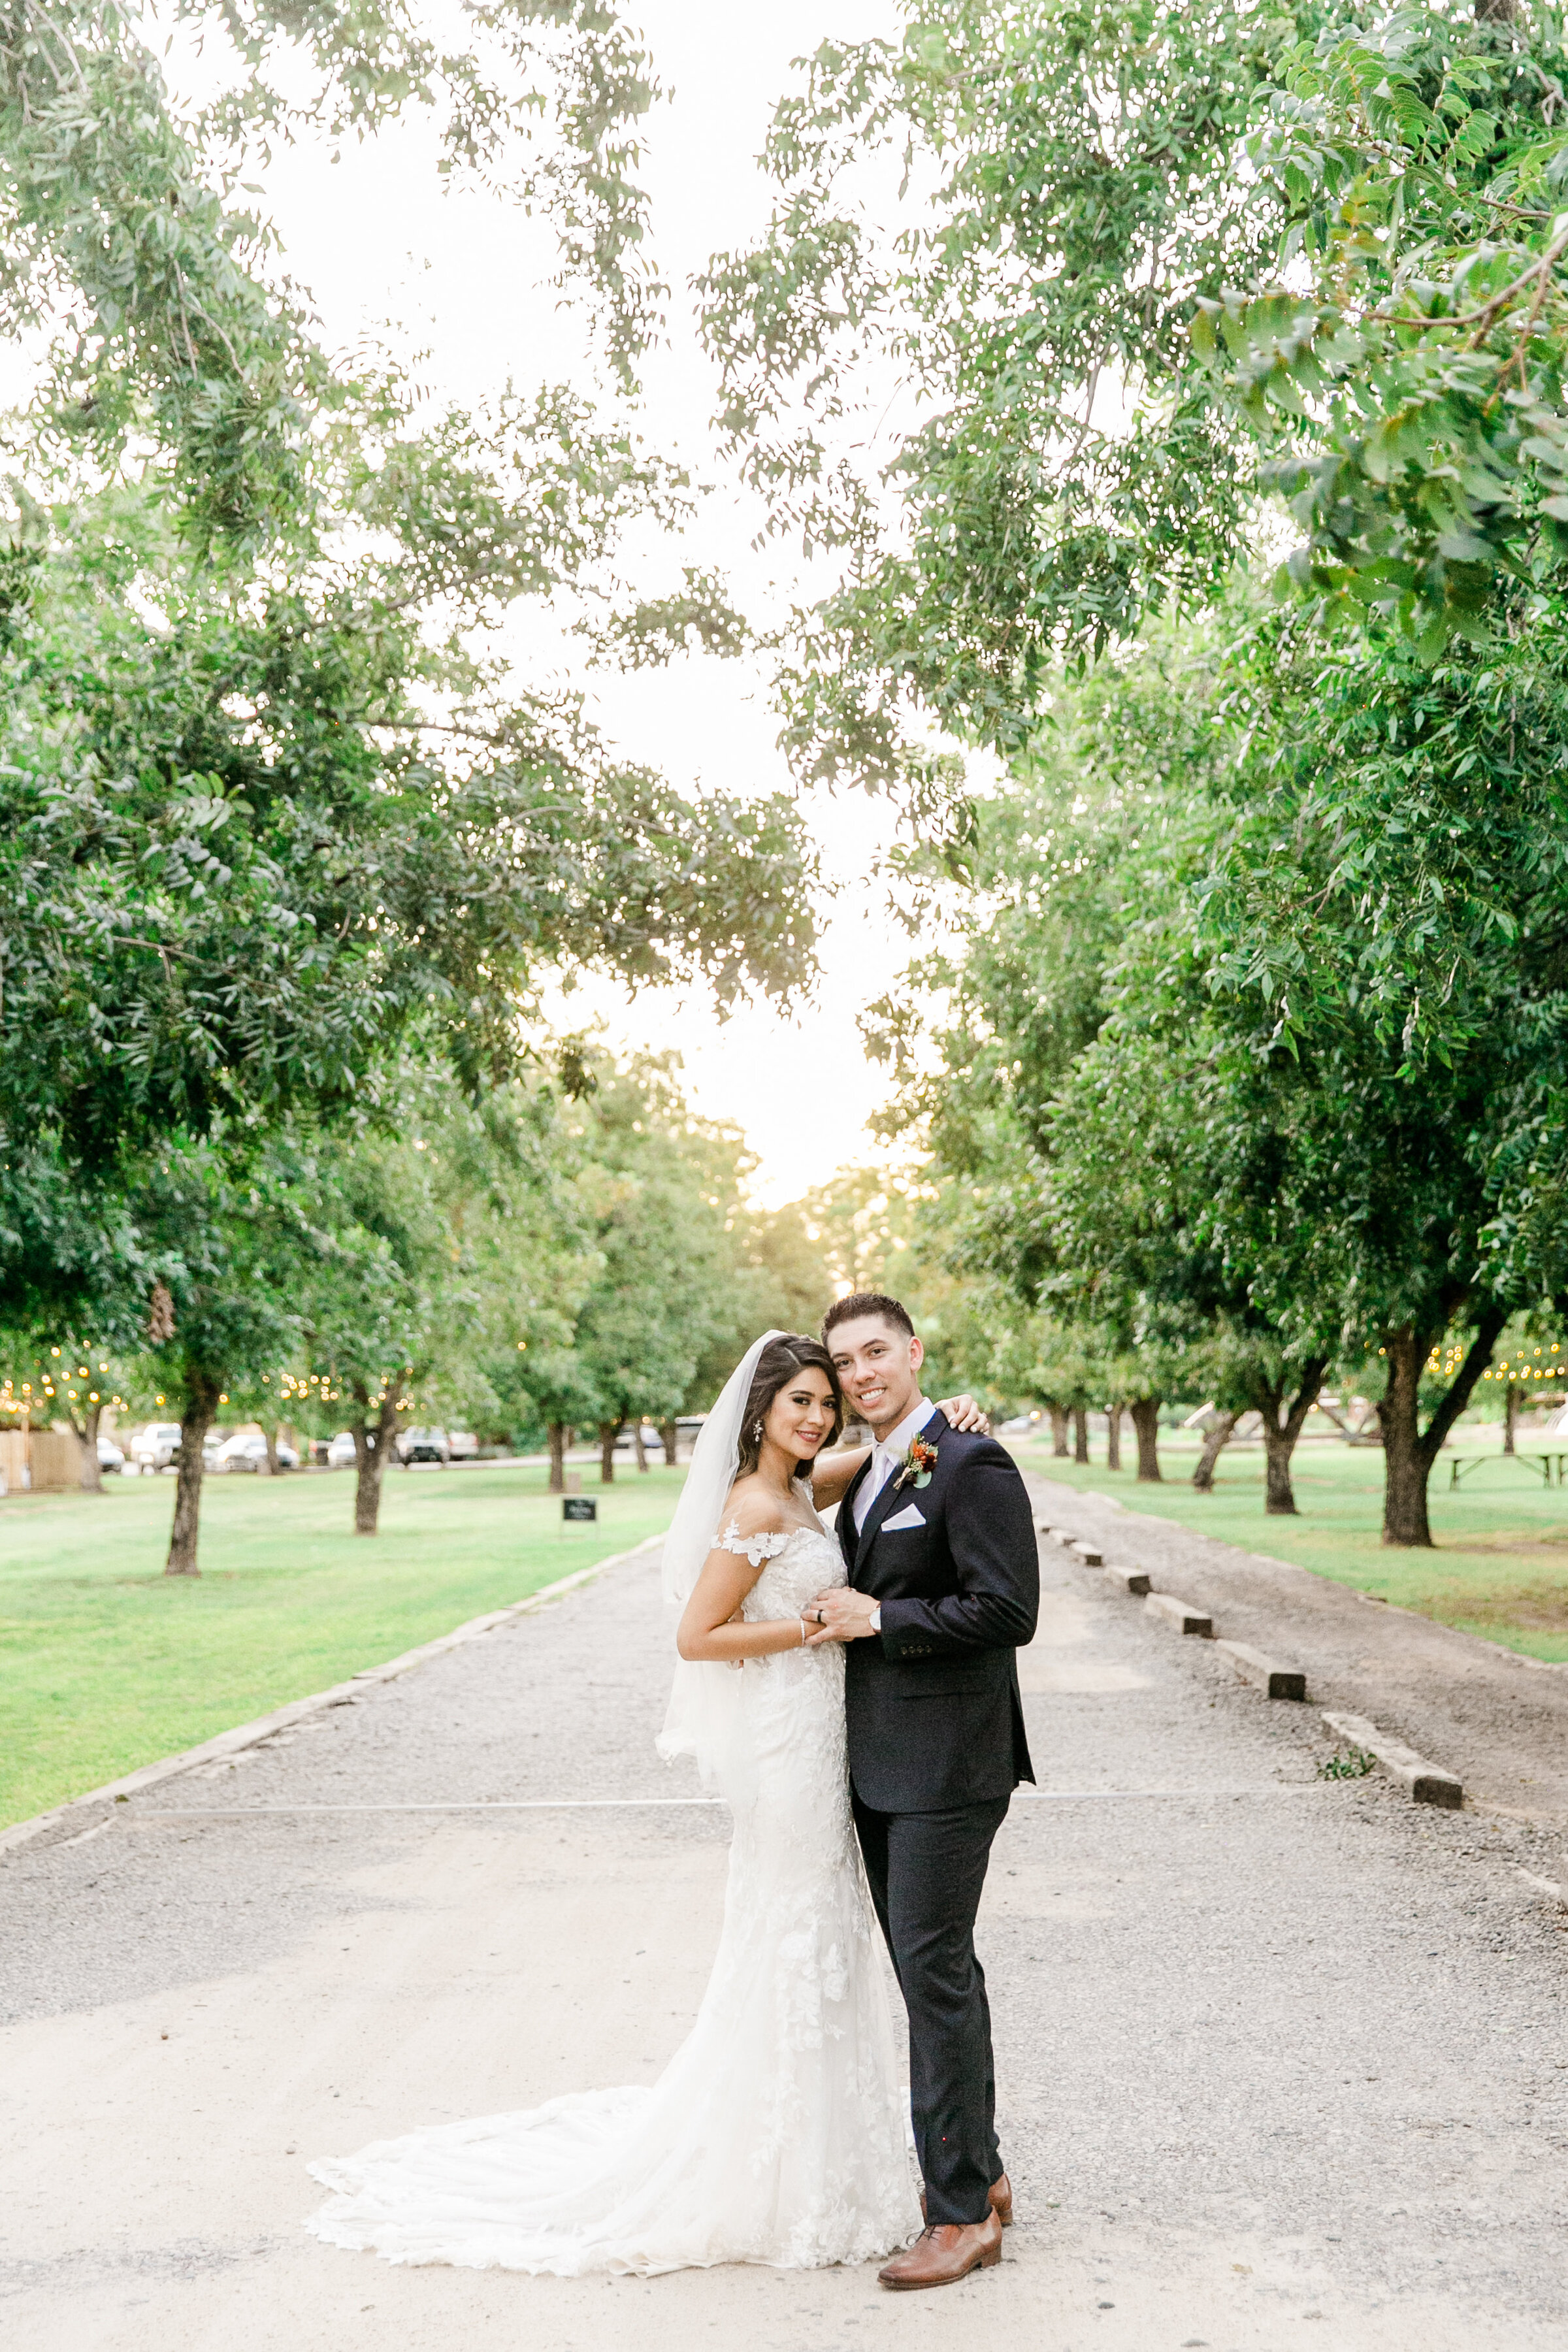 Karlie Colleen Photography - Phoenix Arizona - Farm At South Mountain Venue - Vanessa & Robert-721